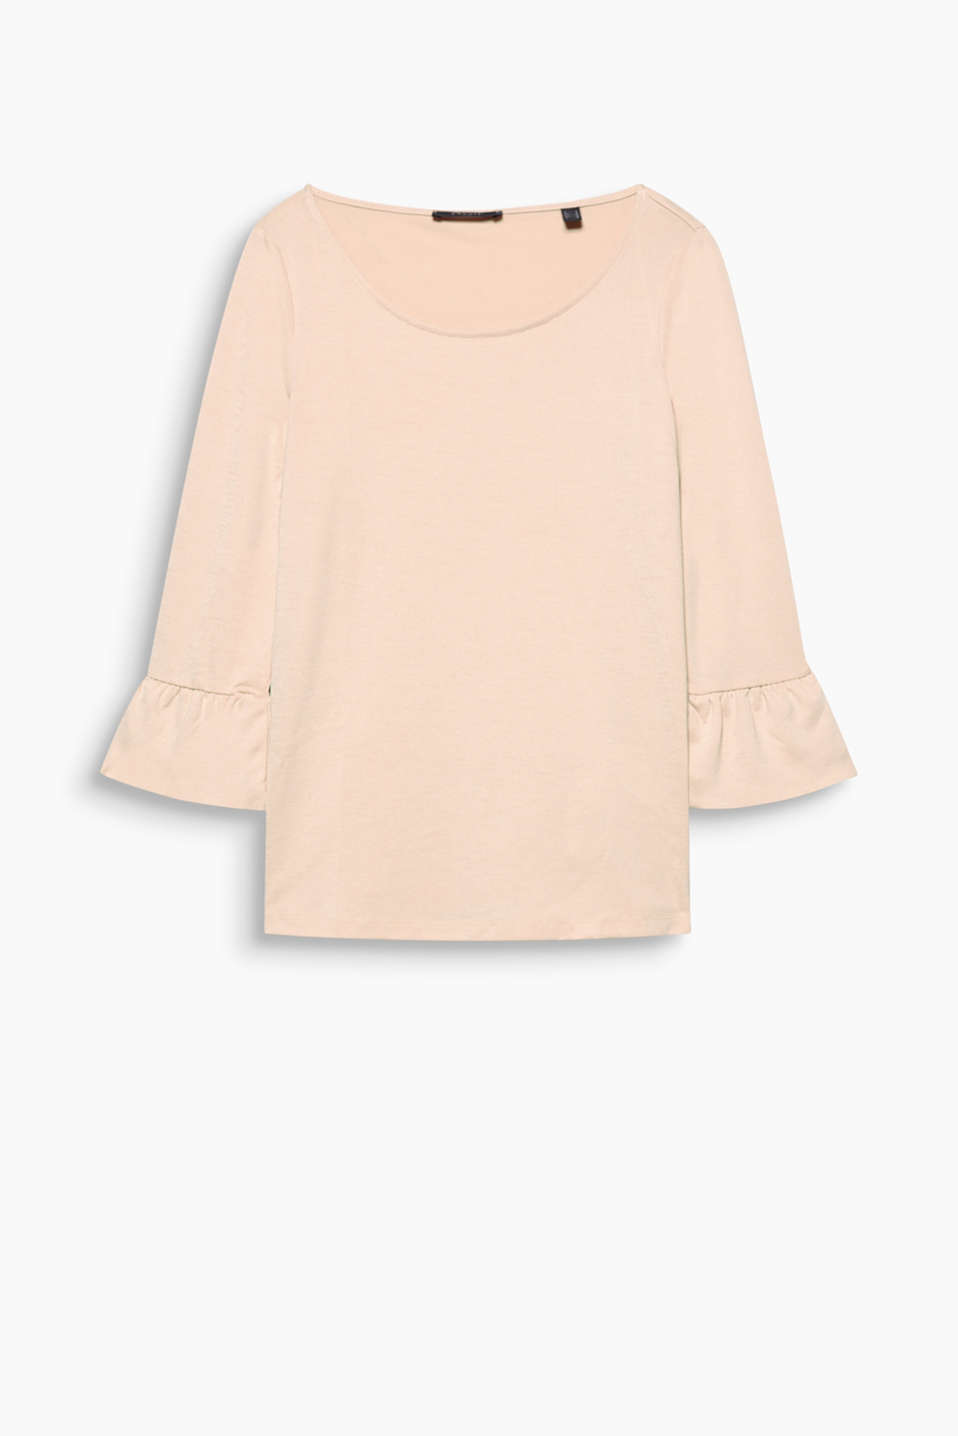 Lightweight piqué top with frilled sleeves and a generous neckline